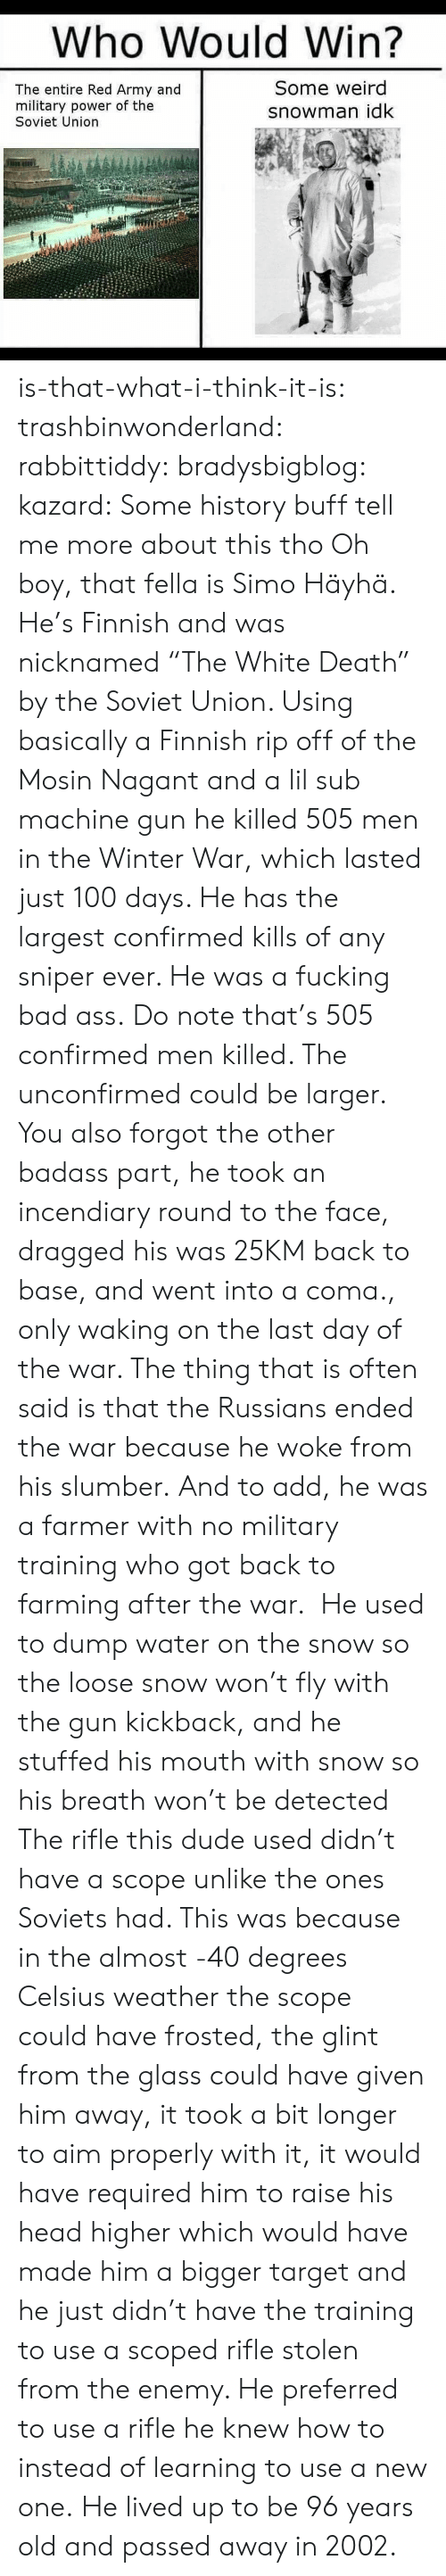 """Anaconda, Ass, and Bad: Who WouldWin?  The entire Red Army and  military power of the  Soviet Union  Some weird  snowman idk is-that-what-i-think-it-is:  trashbinwonderland:  rabbittiddy:  bradysbigblog:   kazard:  Some history buff tell me more about this tho  Oh boy, that fella is Simo Häyhä. He's Finnish and was nicknamed """"The White Death"""" by the Soviet Union. Using basically a Finnish rip off of the Mosin Nagant and a lil sub machine gun he killed 505 men in the Winter War, which lasted just 100 days. He has the largest confirmed kills of any sniper ever. He was a fucking bad ass.   Do note that's 505 confirmed men killed. The unconfirmed could be larger. You also forgot the other badass part, he took an incendiary round to the face, dragged his was 25KM back to base, and went into a coma., only waking on the last day of the war. The thing that is often said is that the Russians ended the war because he woke from his slumber.  And to add, he was a farmer with no military training who got back to farming after the war. He used to dump water on the snow so the loose snow won't fly with the gun kickback, and he stuffed his mouth with snow so his breath won't be detected  The rifle this dude used didn't have a scope unlike the ones Soviets had. This was because in the almost -40 degrees Celsius weather the scope could have frosted, the glint from the glass could have given him away, it took a bit longer to aim properly with it, it would have required him to raise his head higher which would have made him a bigger target and he just didn't have the training to use a scoped rifle stolen from the enemy. He preferred to use a rifle he knew how to instead of learning to use a new one. He lived up to be 96 years old and passed away in 2002."""